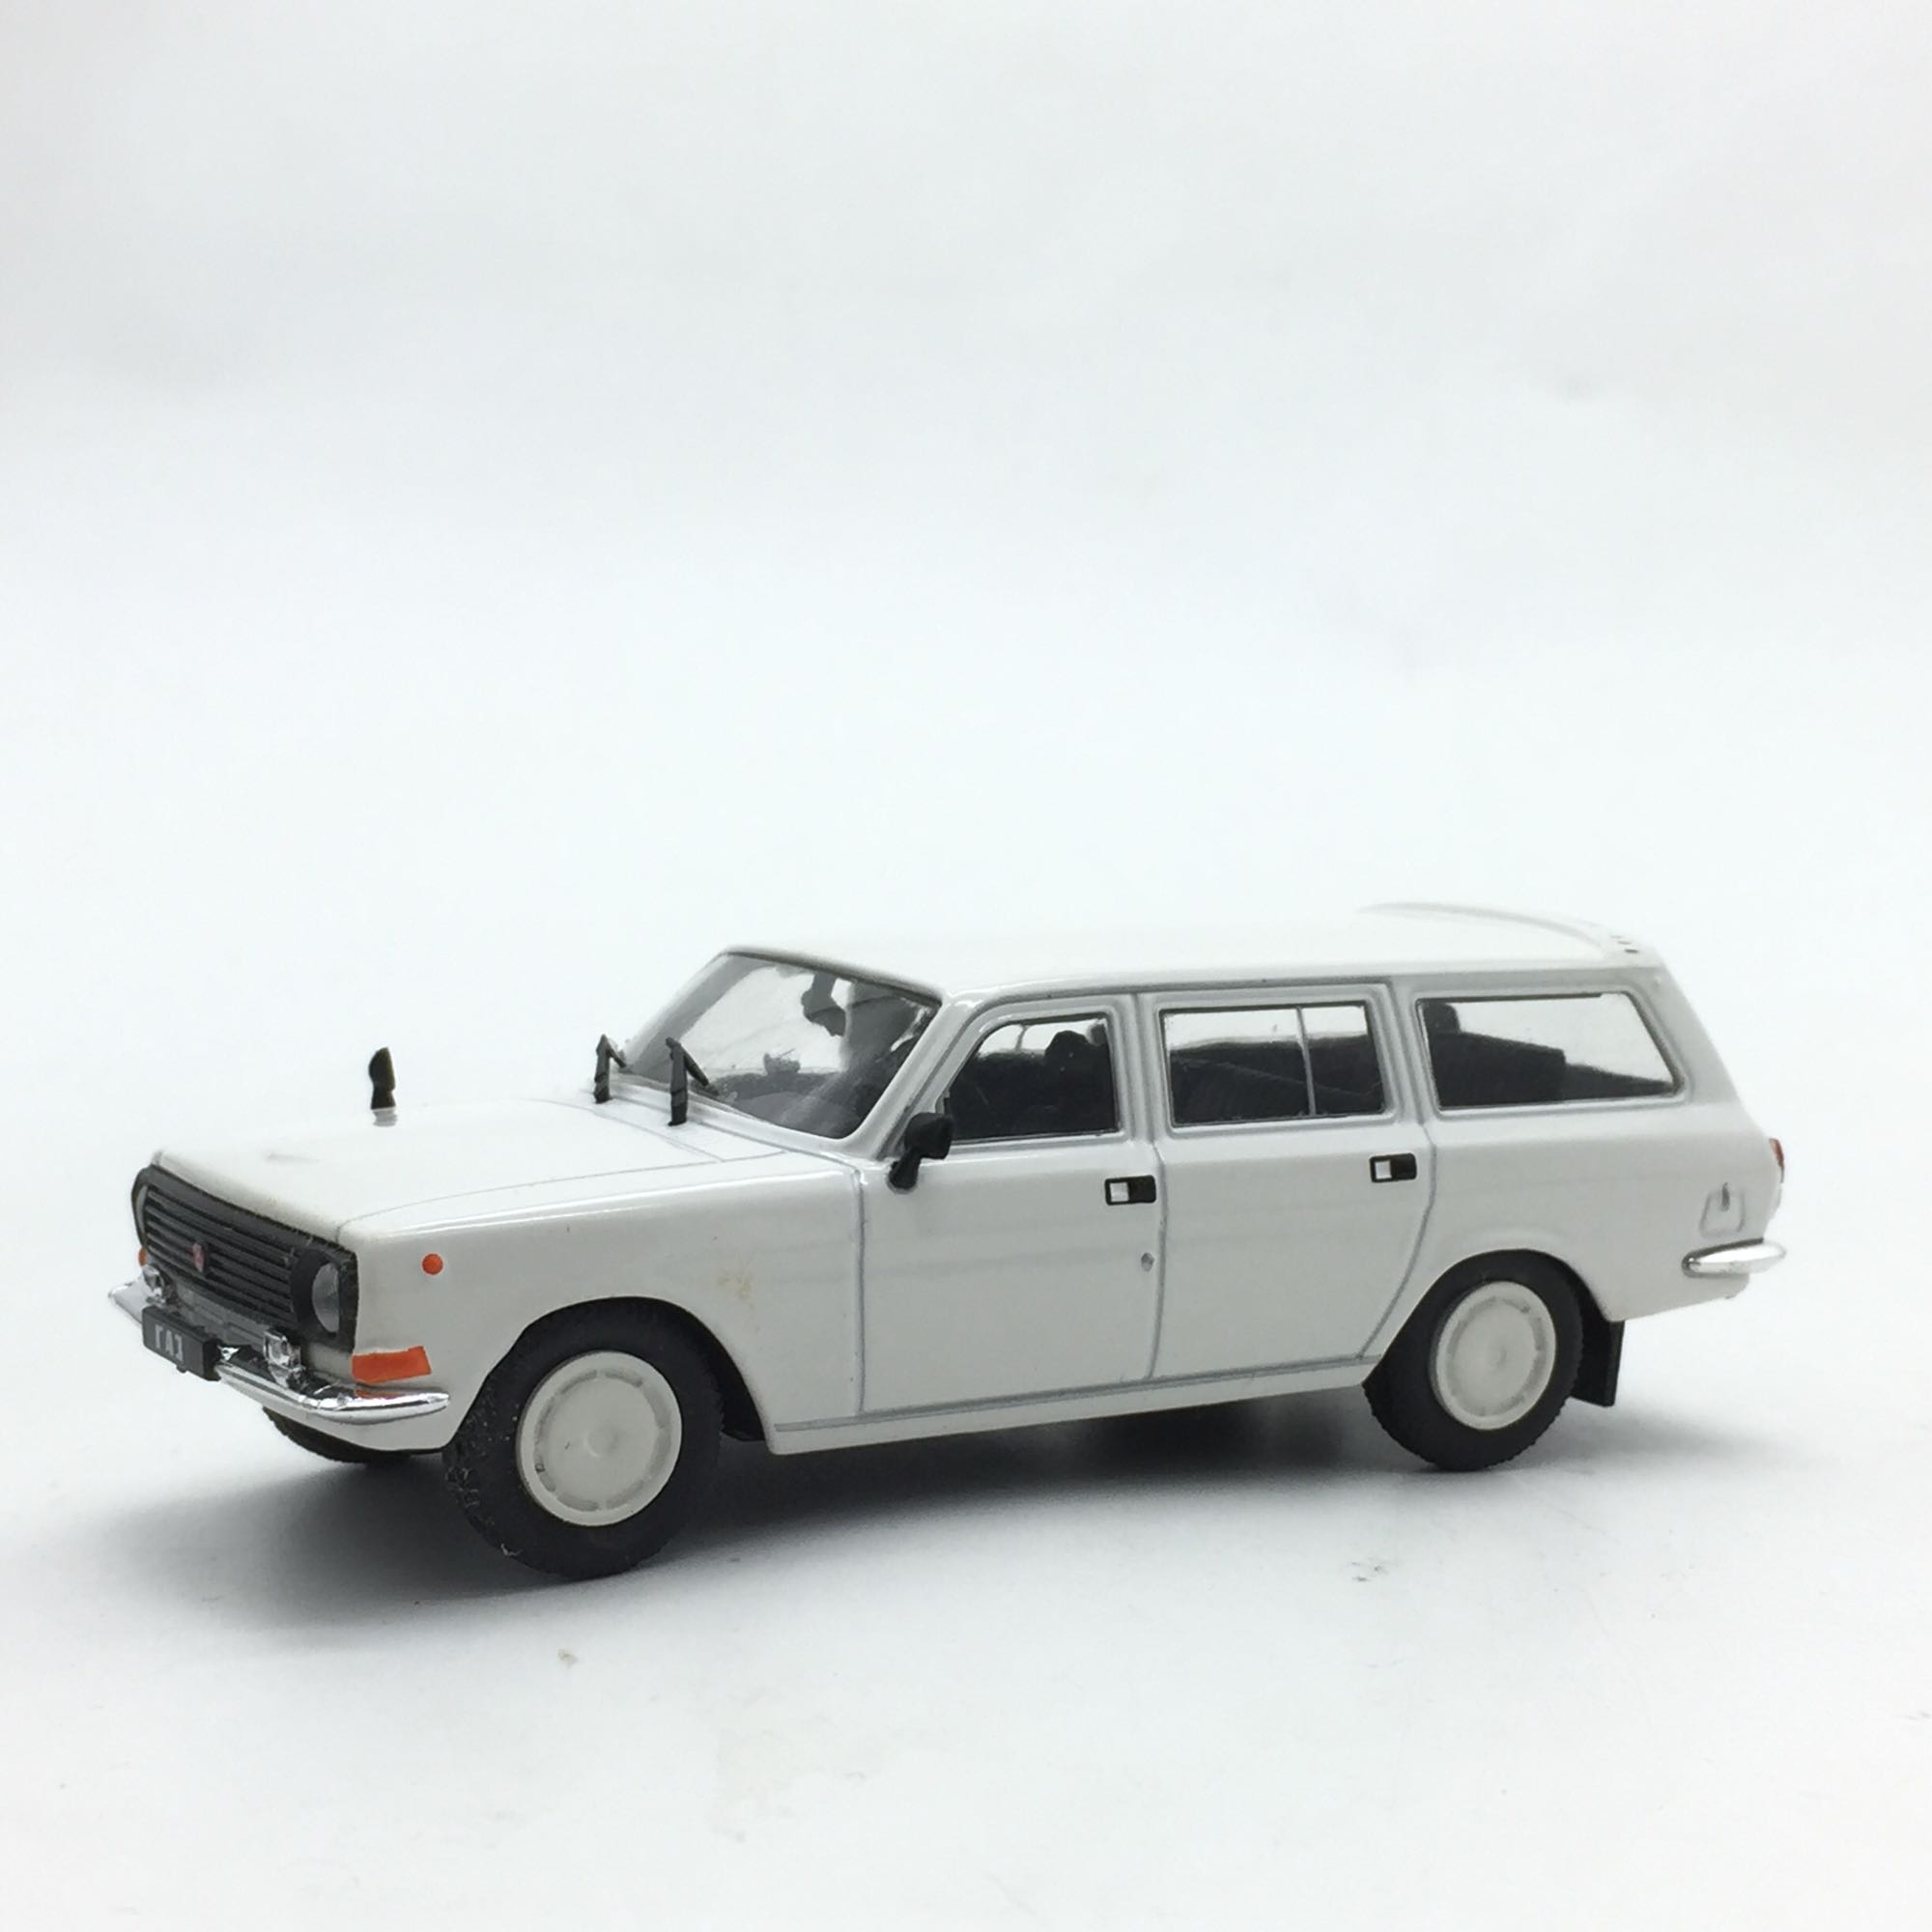 1:43 Alloy Vehicle Model Of Soviet Travel Vehicle Model Toy